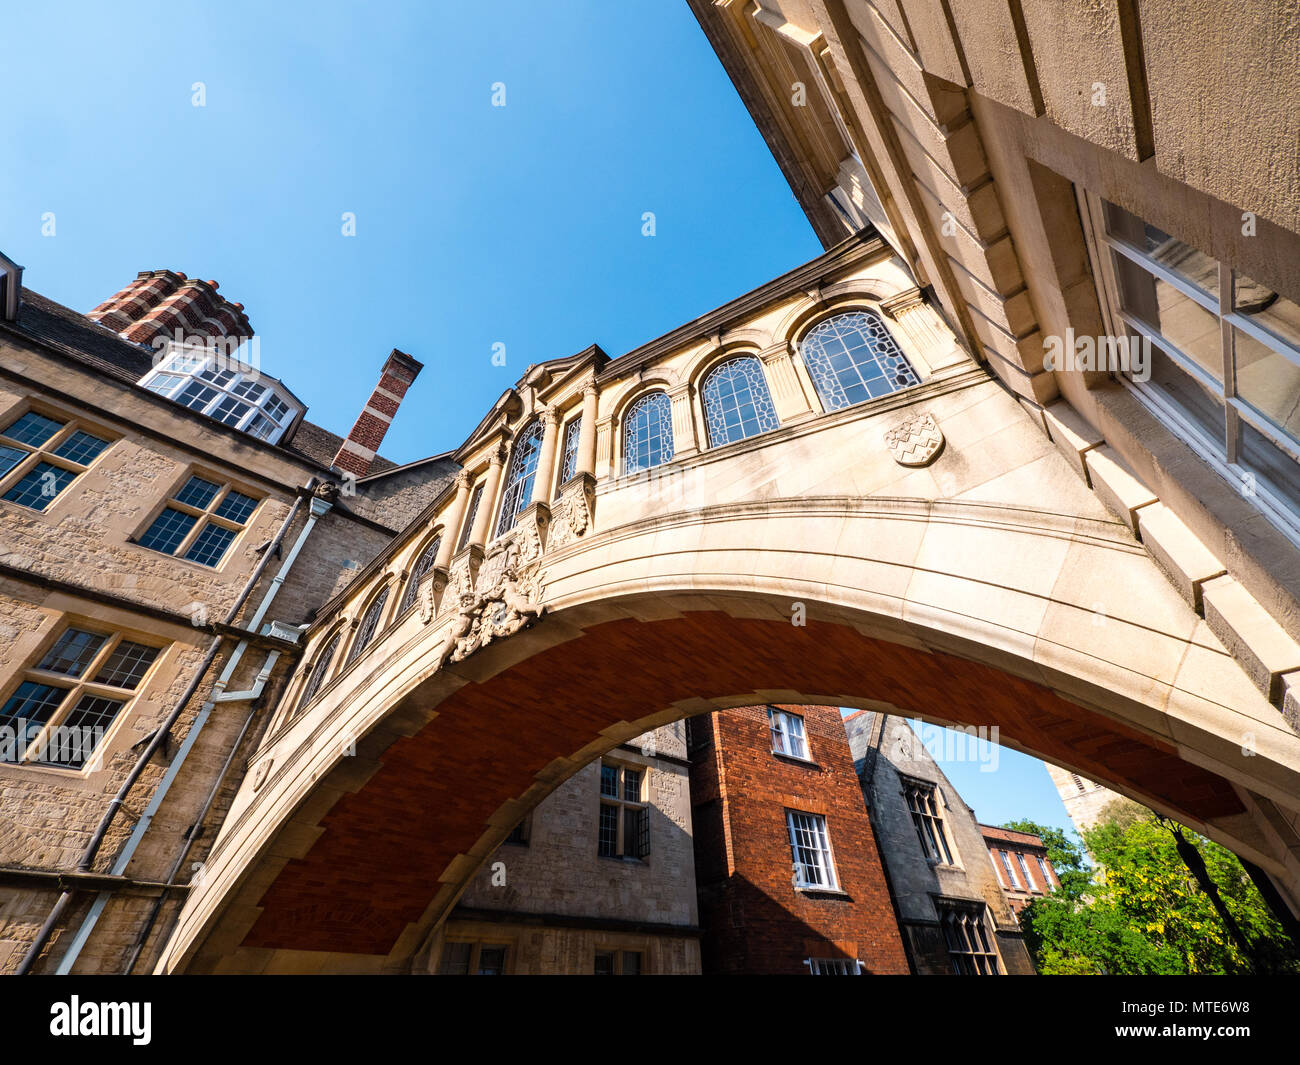 The Bridge of Sighs, Oxford Landmark, Hertford College, Oxford, Oxfordshire, England, UK, GB. - Stock Image